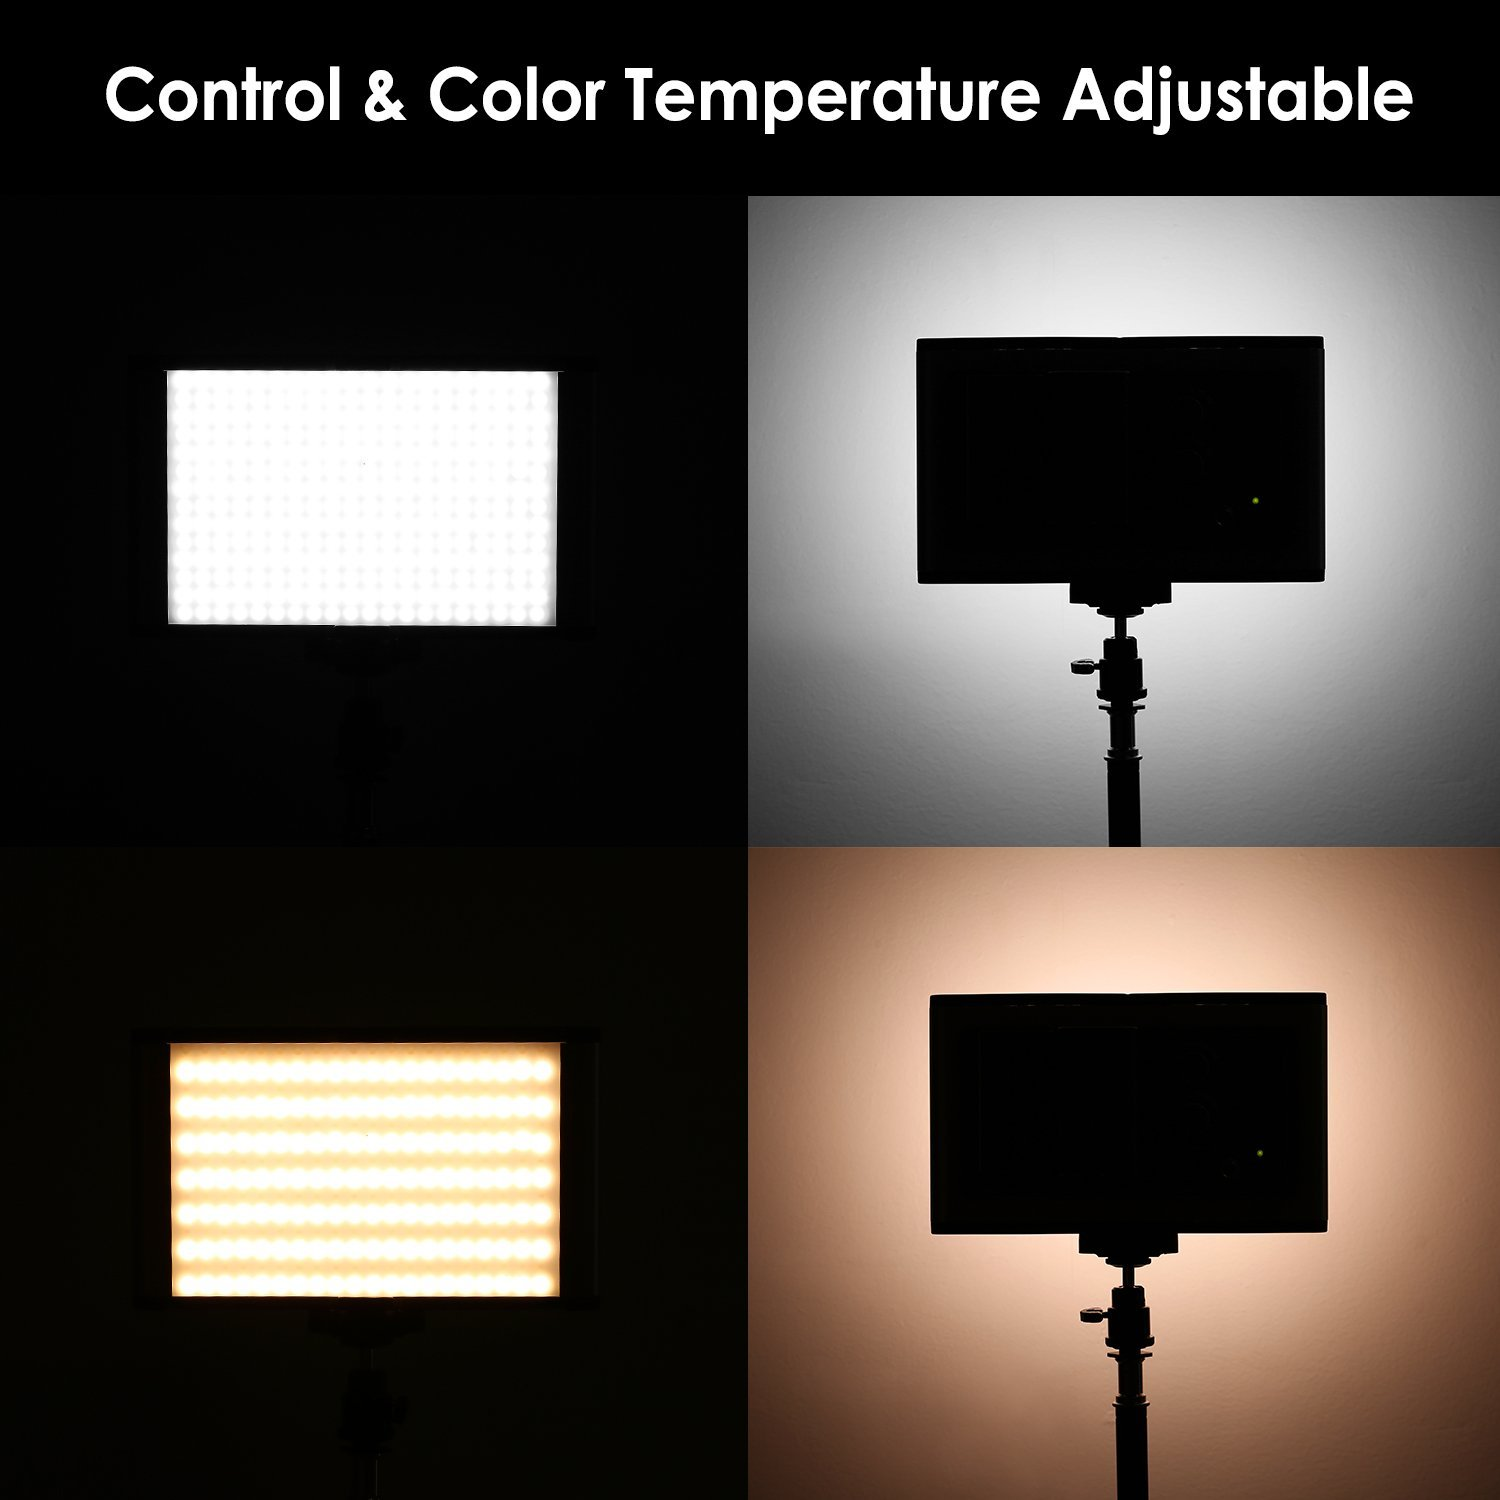 Neewer 3-Pack Bi-color Dimmable 280 LED Video Light and Stand Lighting Kit with Battery, USB Charger and Carrying Bag - 3200-5600K,CRI 95+ LED Panel for Camera Photo Studio, YouTube Video Shooting by Neewer (Image #3)